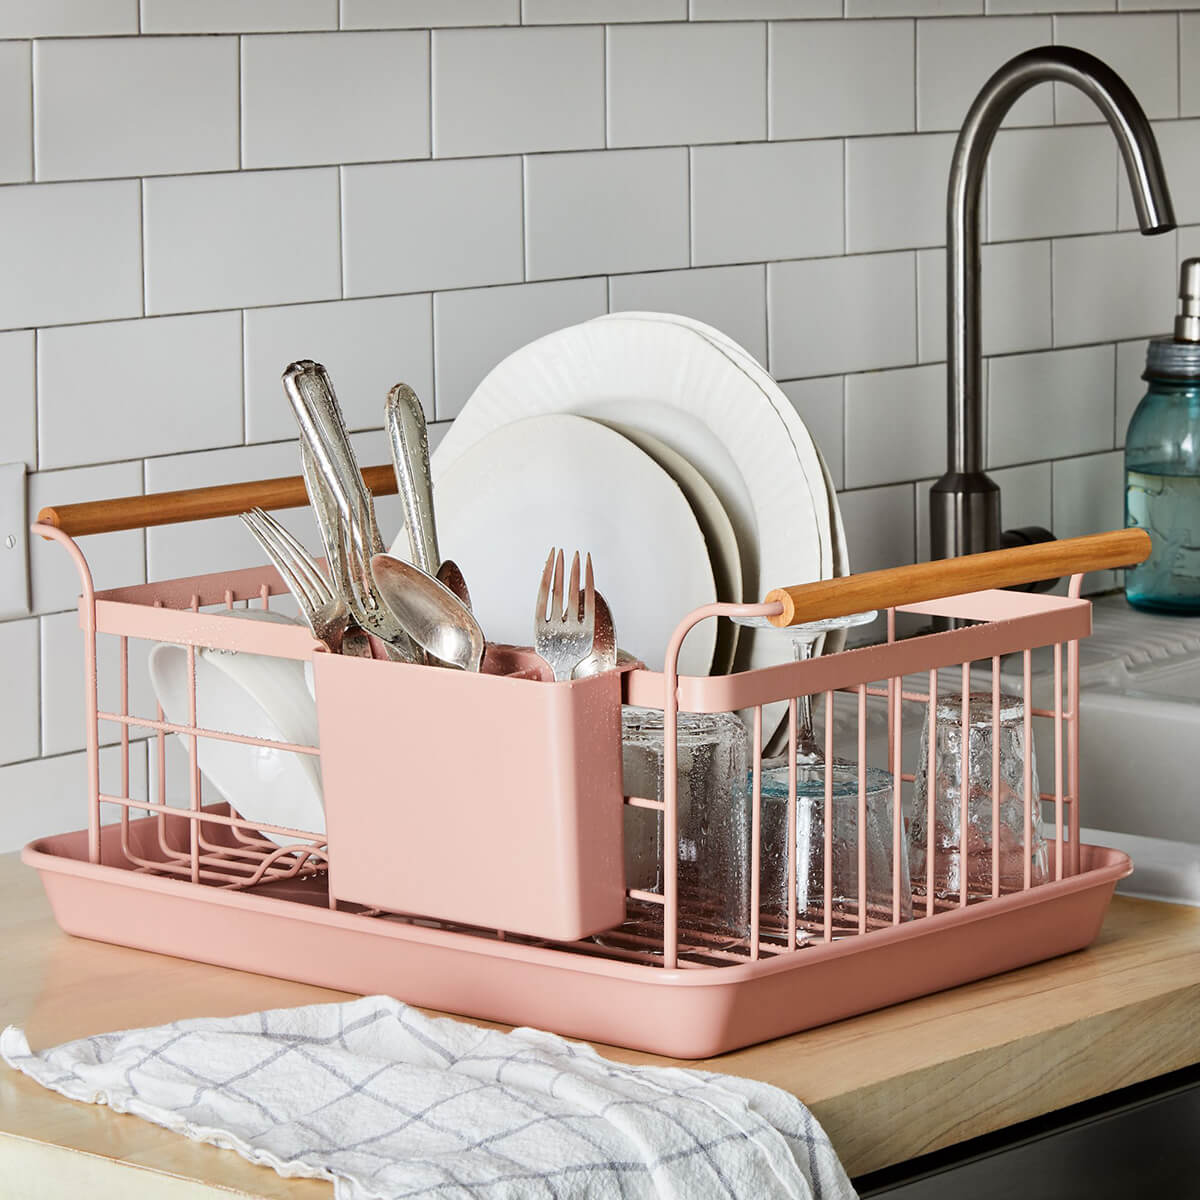 Stylish Dish Rack with Wooden Handles